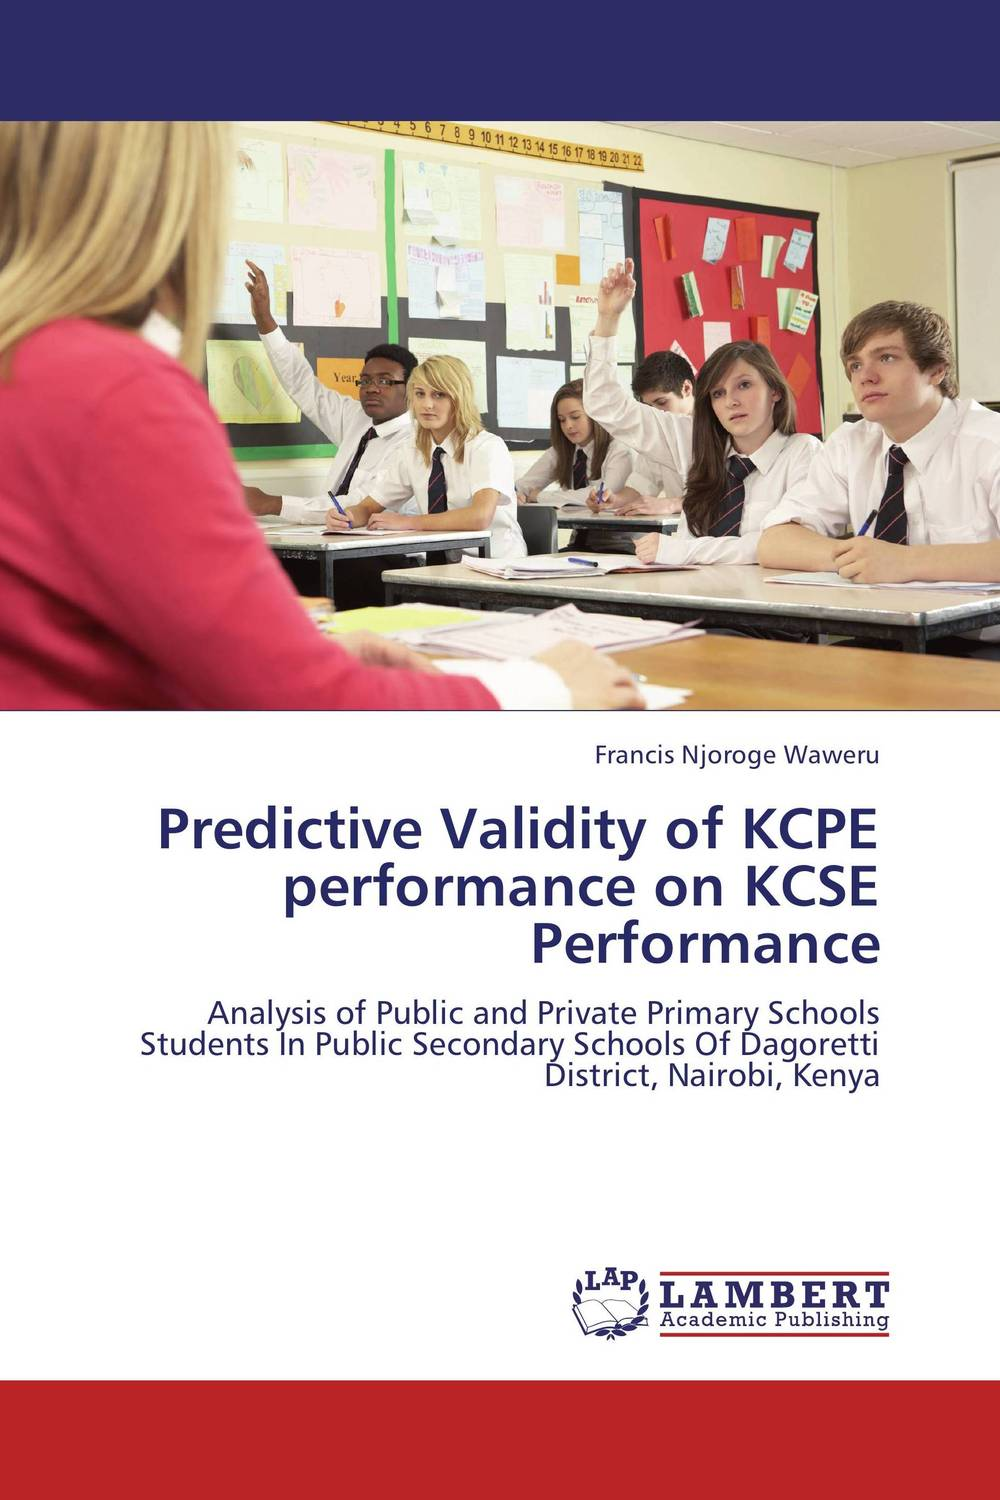 Predictive Validity of KCPE performance on KCSE Performance predictive validity of kcpe performance on kcse performance